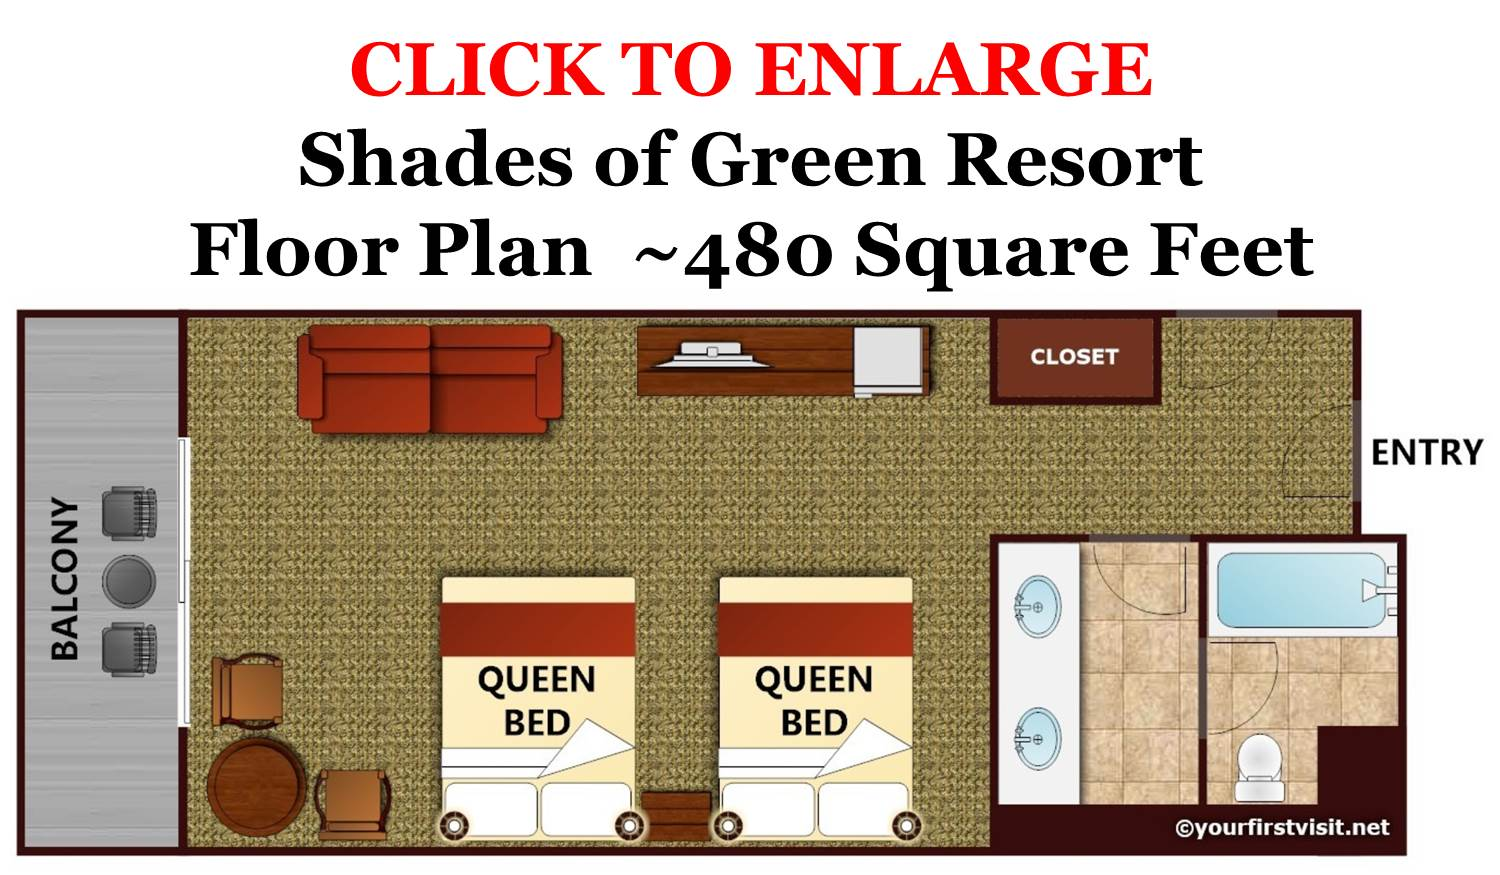 Shades of Green Floor Plan from yourfirstvisit.net